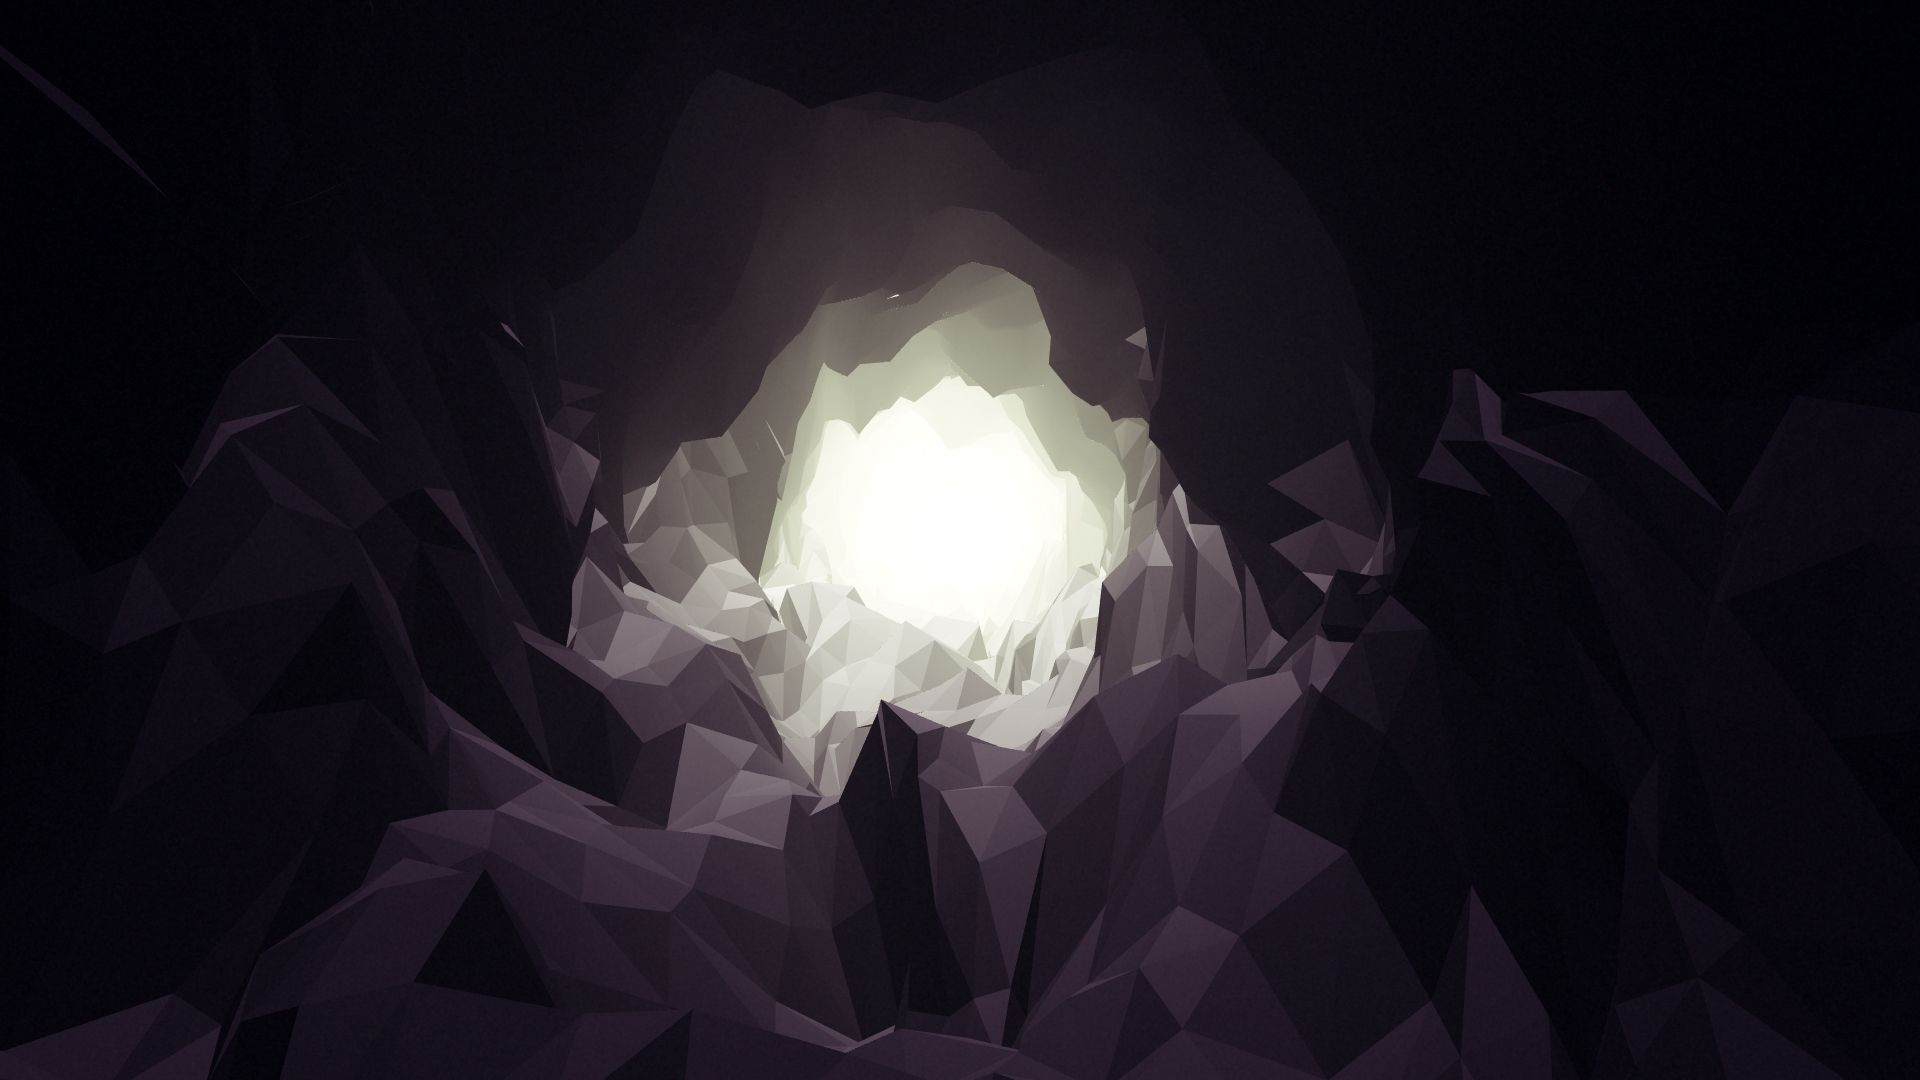 Low Poly Space Wallpaper Free Download Free » yoKae.com ...